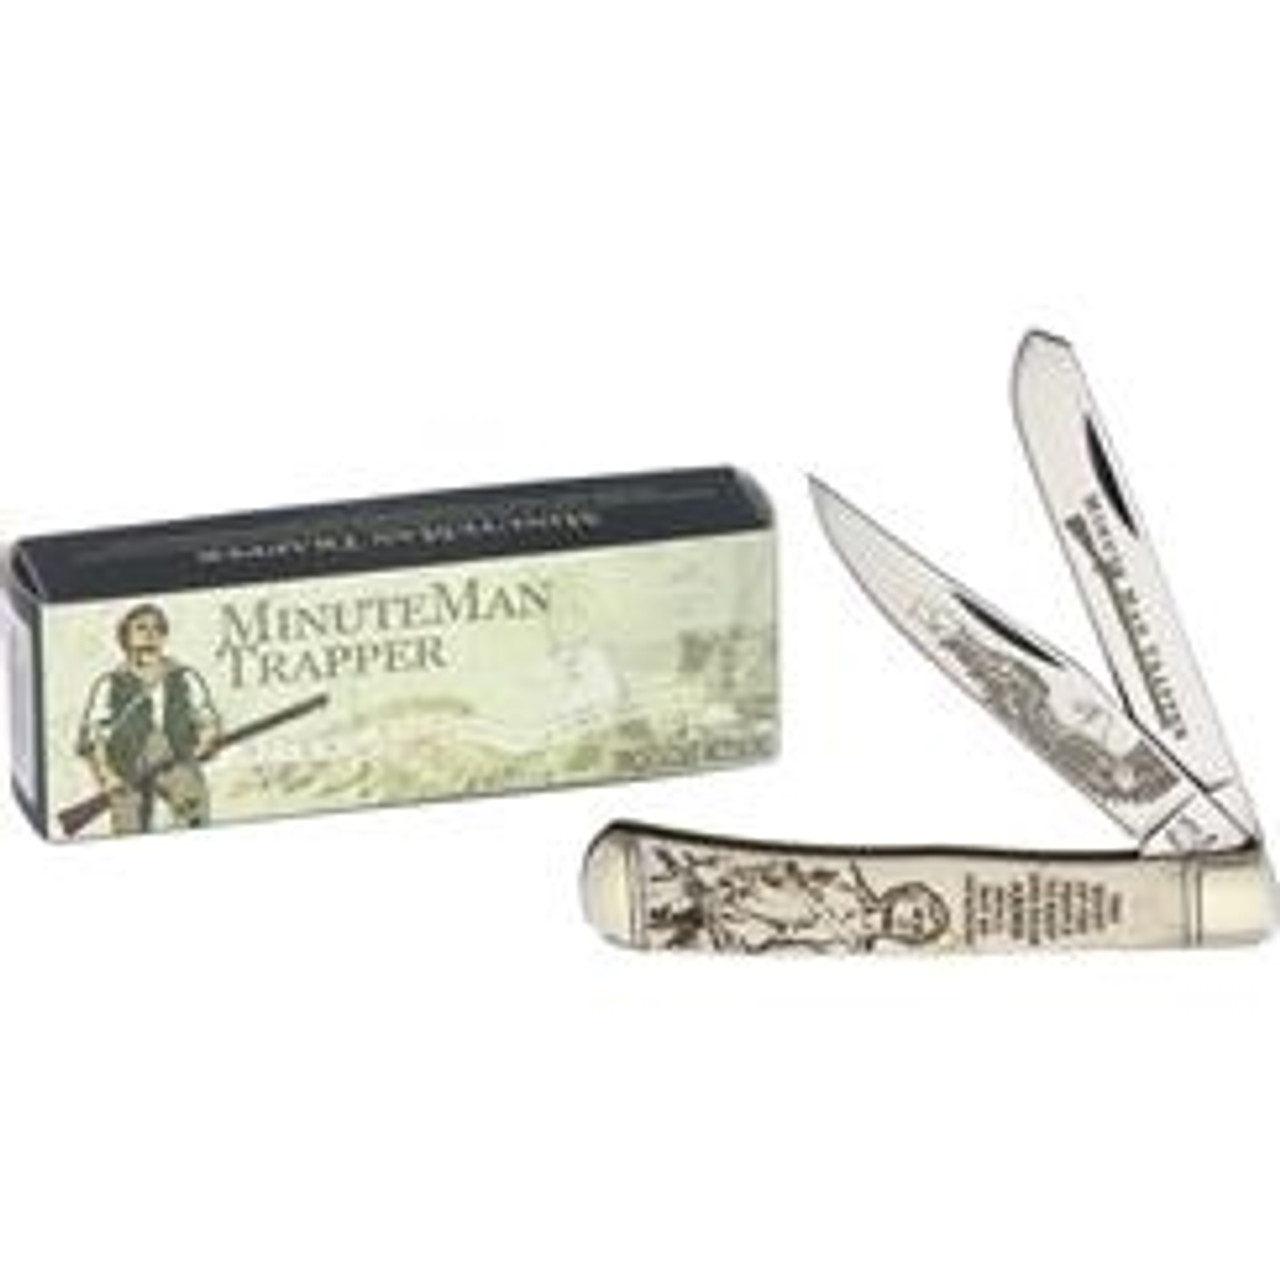 Rough Ryder RR1447 Minute Man Trapper, Stainless Steel,  White Bone Handle